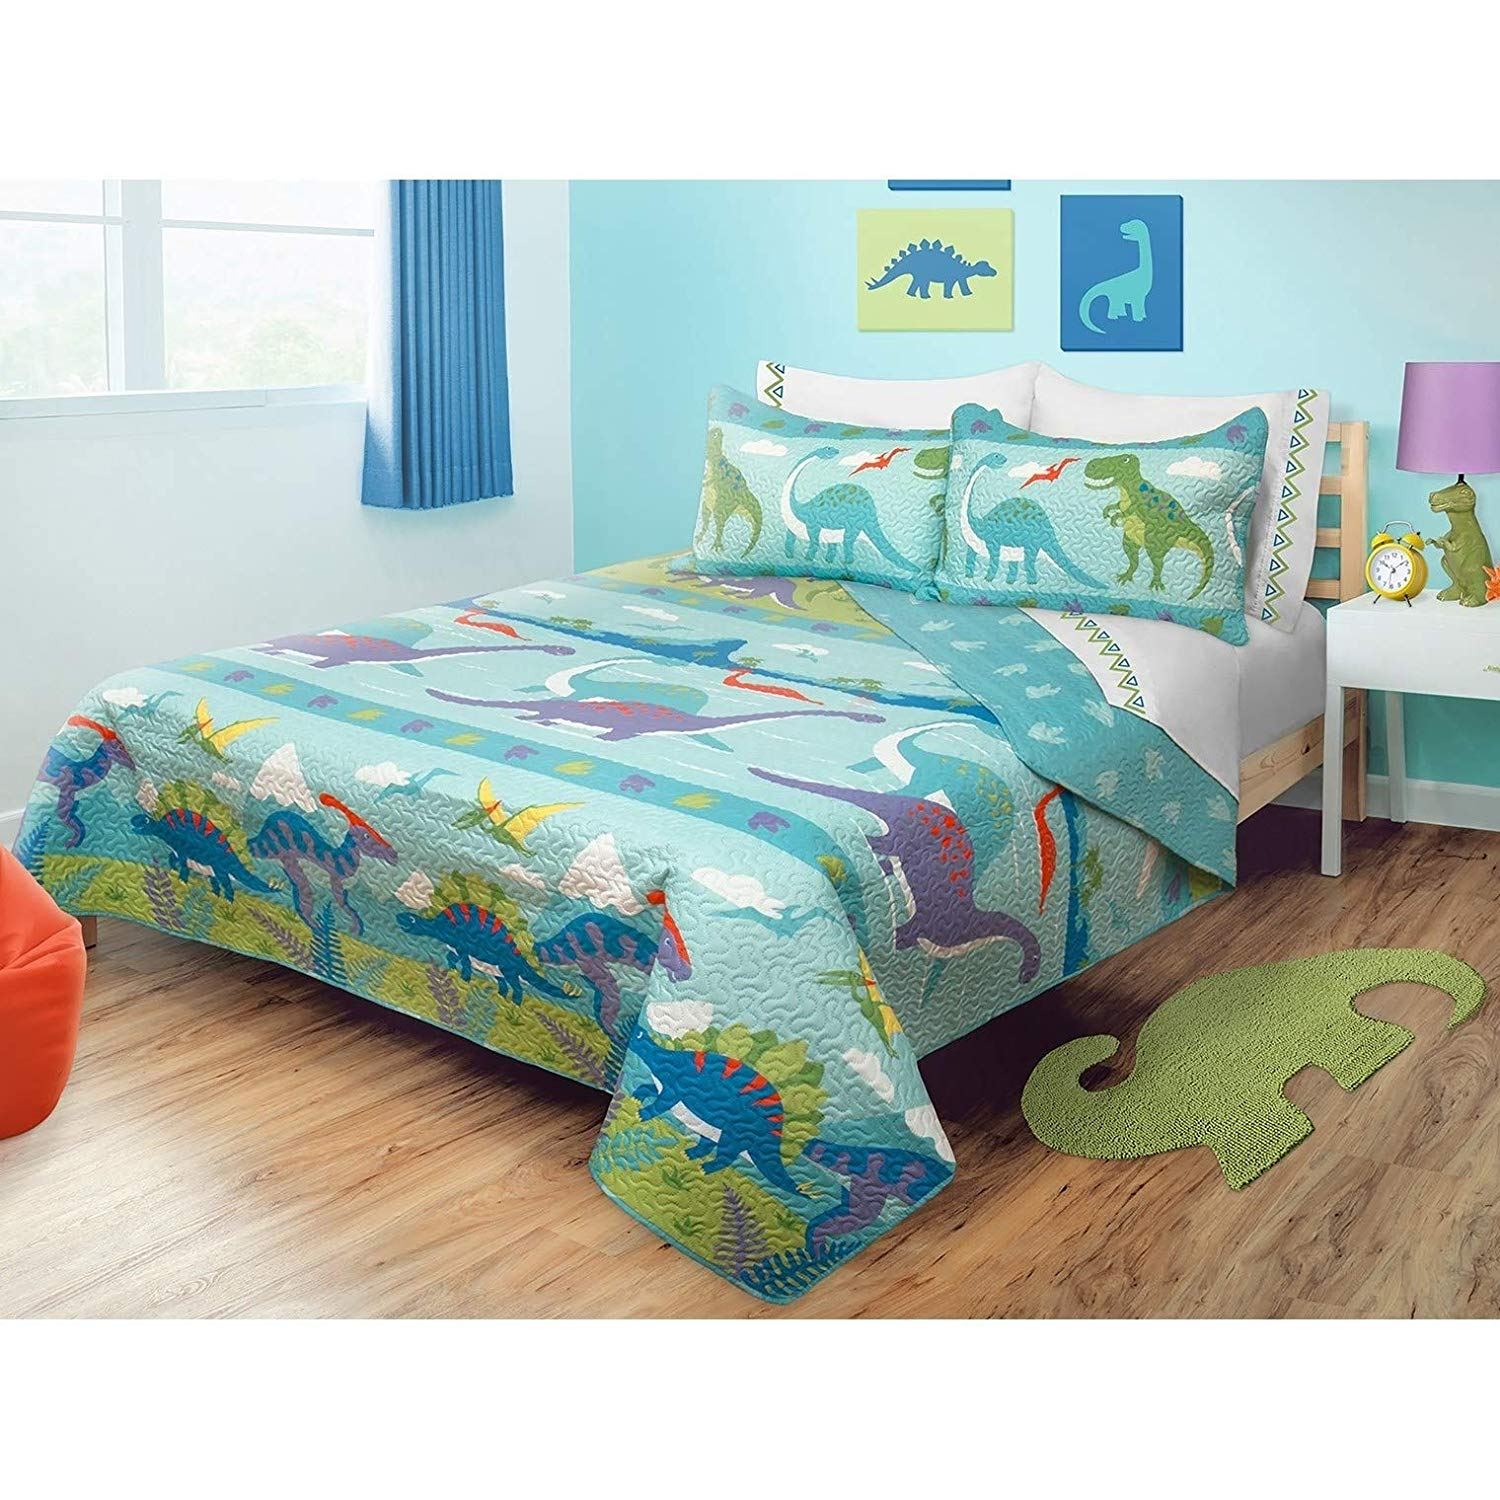 3 Piece Dinosaur Quilt Full Size Set Colorful Aqua Blue Double Dino Themed Bedding Kids Bedroom Polyester Microfiber